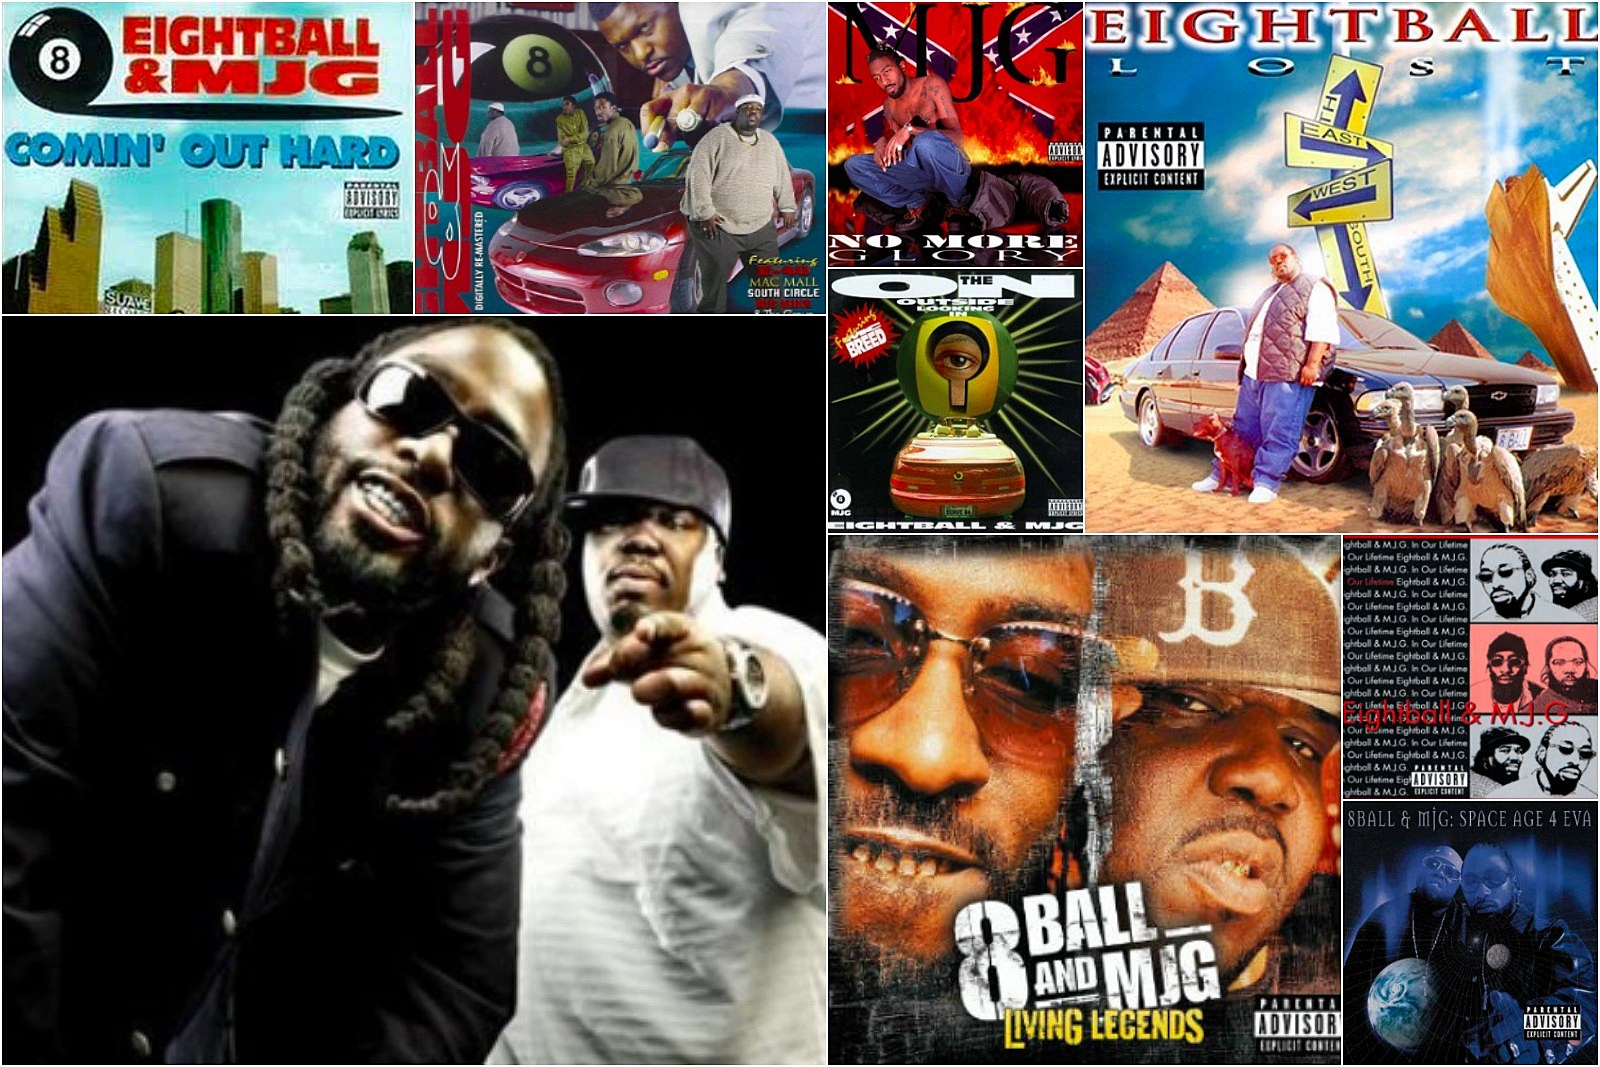 8ball mjg helped lay down the blueprint for southern rap show 8ball mjg helped lay down the blueprint for southern rap show some respect malvernweather Images